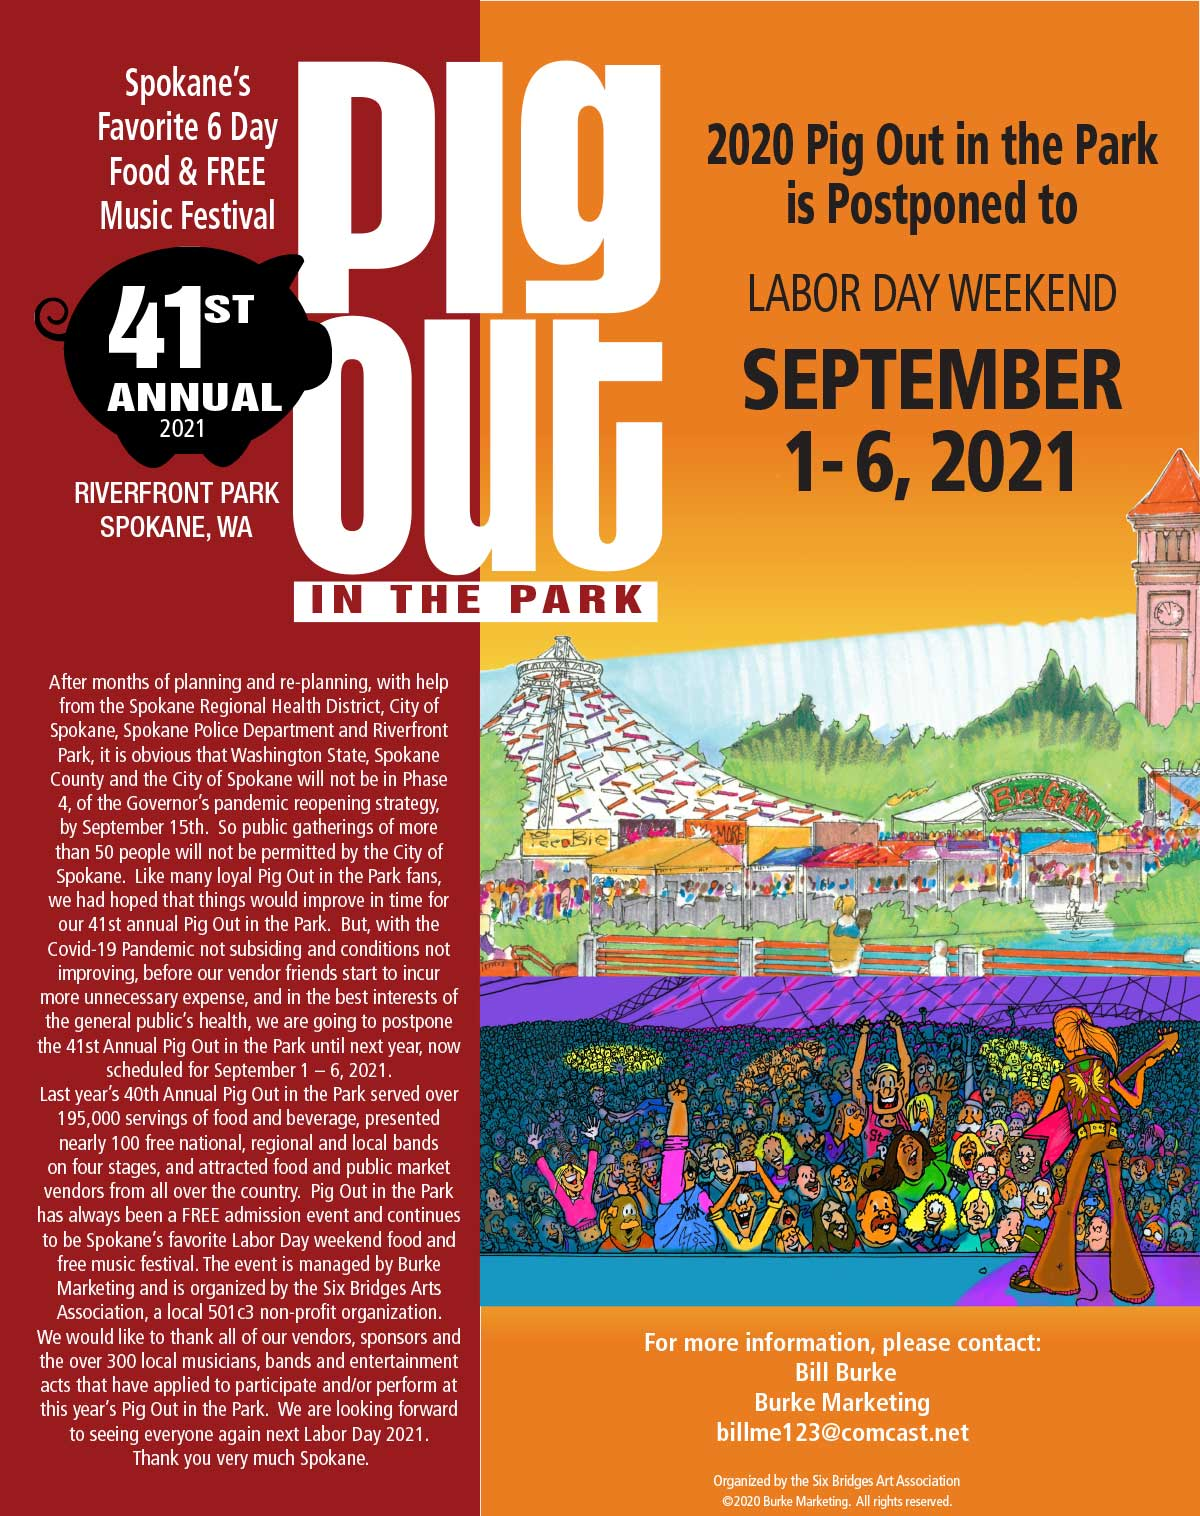 Pig Out In The Park Spokane's Favorite 6 Day Food & FREE Music Festival